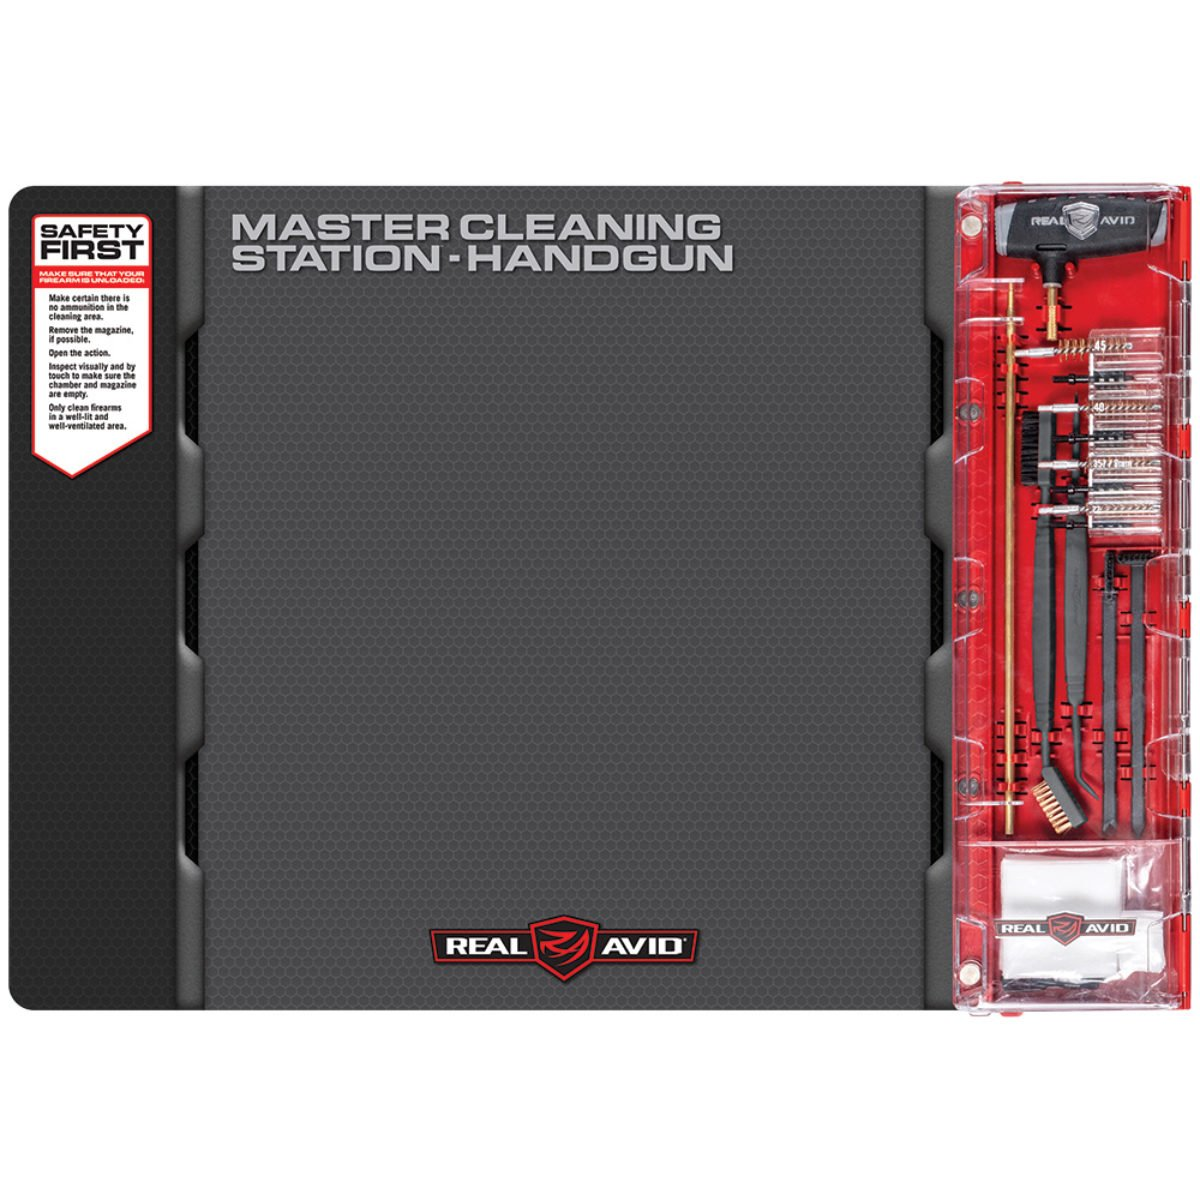 MASTER CLEANING STATION – HANDGUN